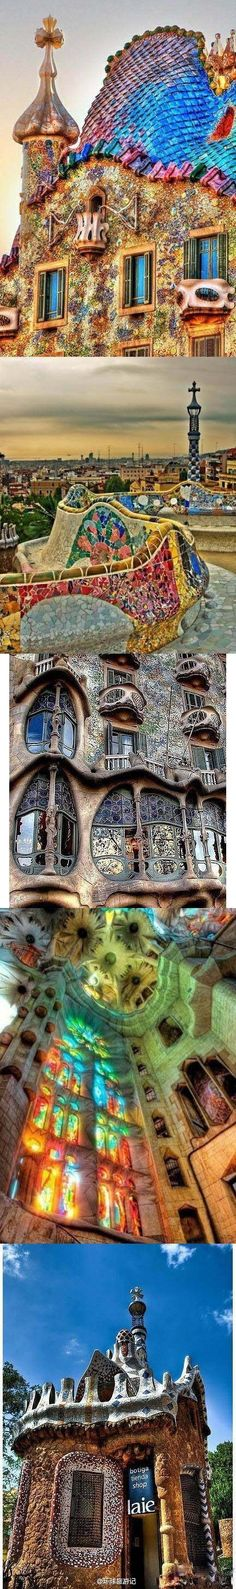 Barcelona <- I LOVED this city, Gaudi's work is absolutely stunning, it made me feel like I had jumped into a fairy tale book and never wanted to leave.